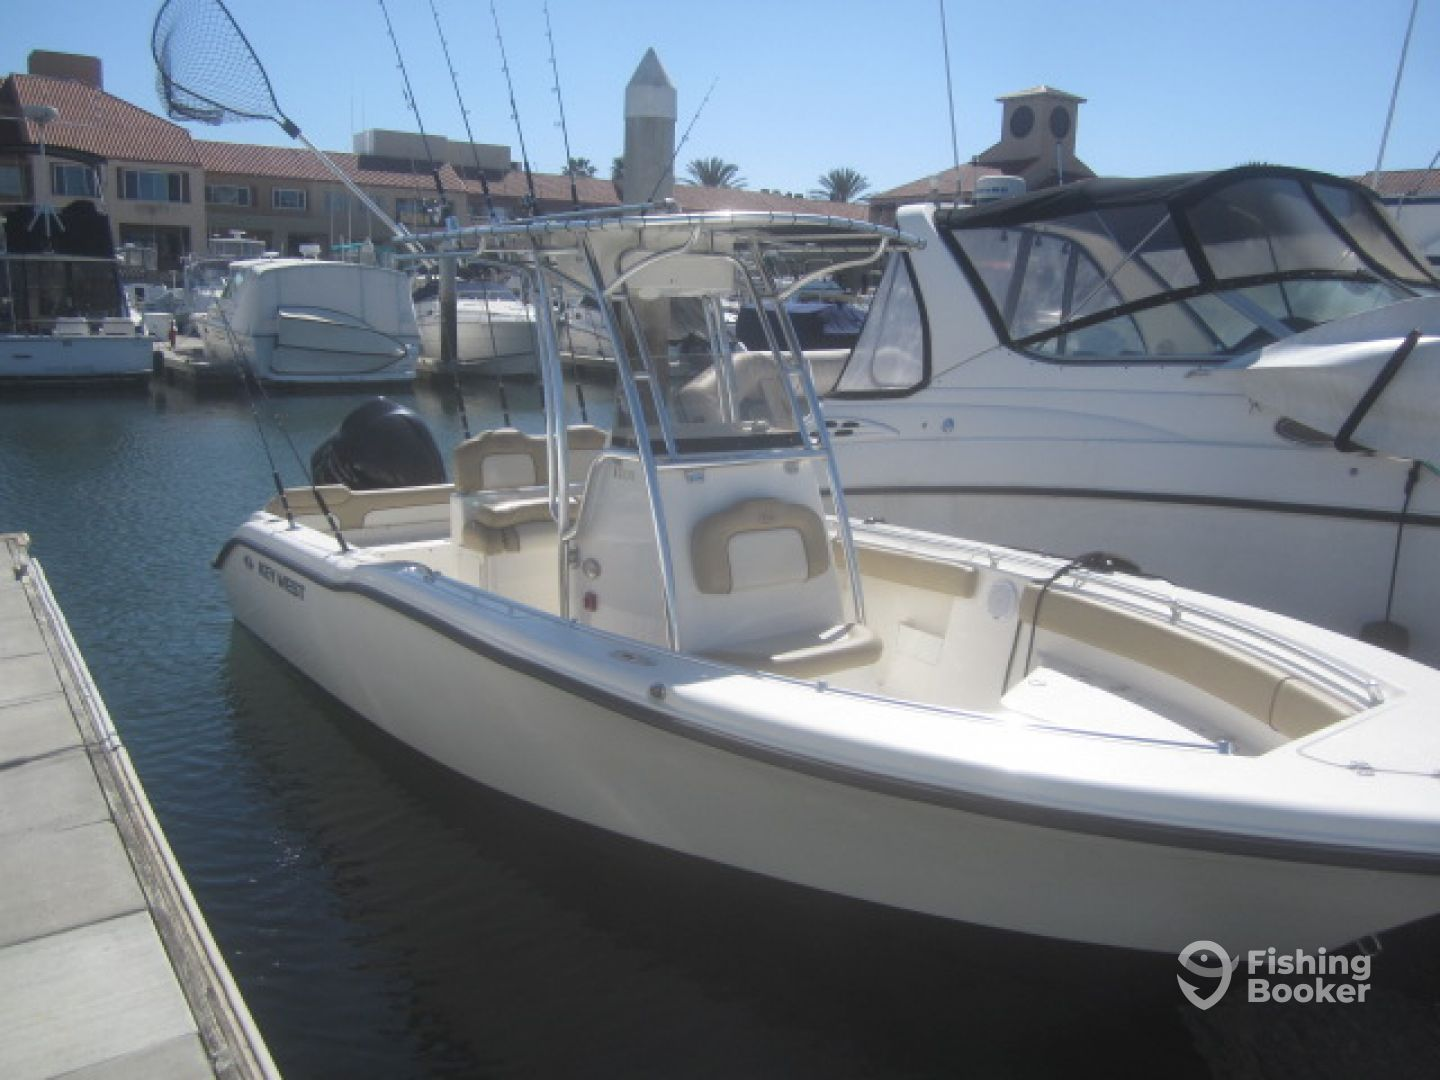 I just found Breakwall Fishing Charter Services - 24' on FishingBooker